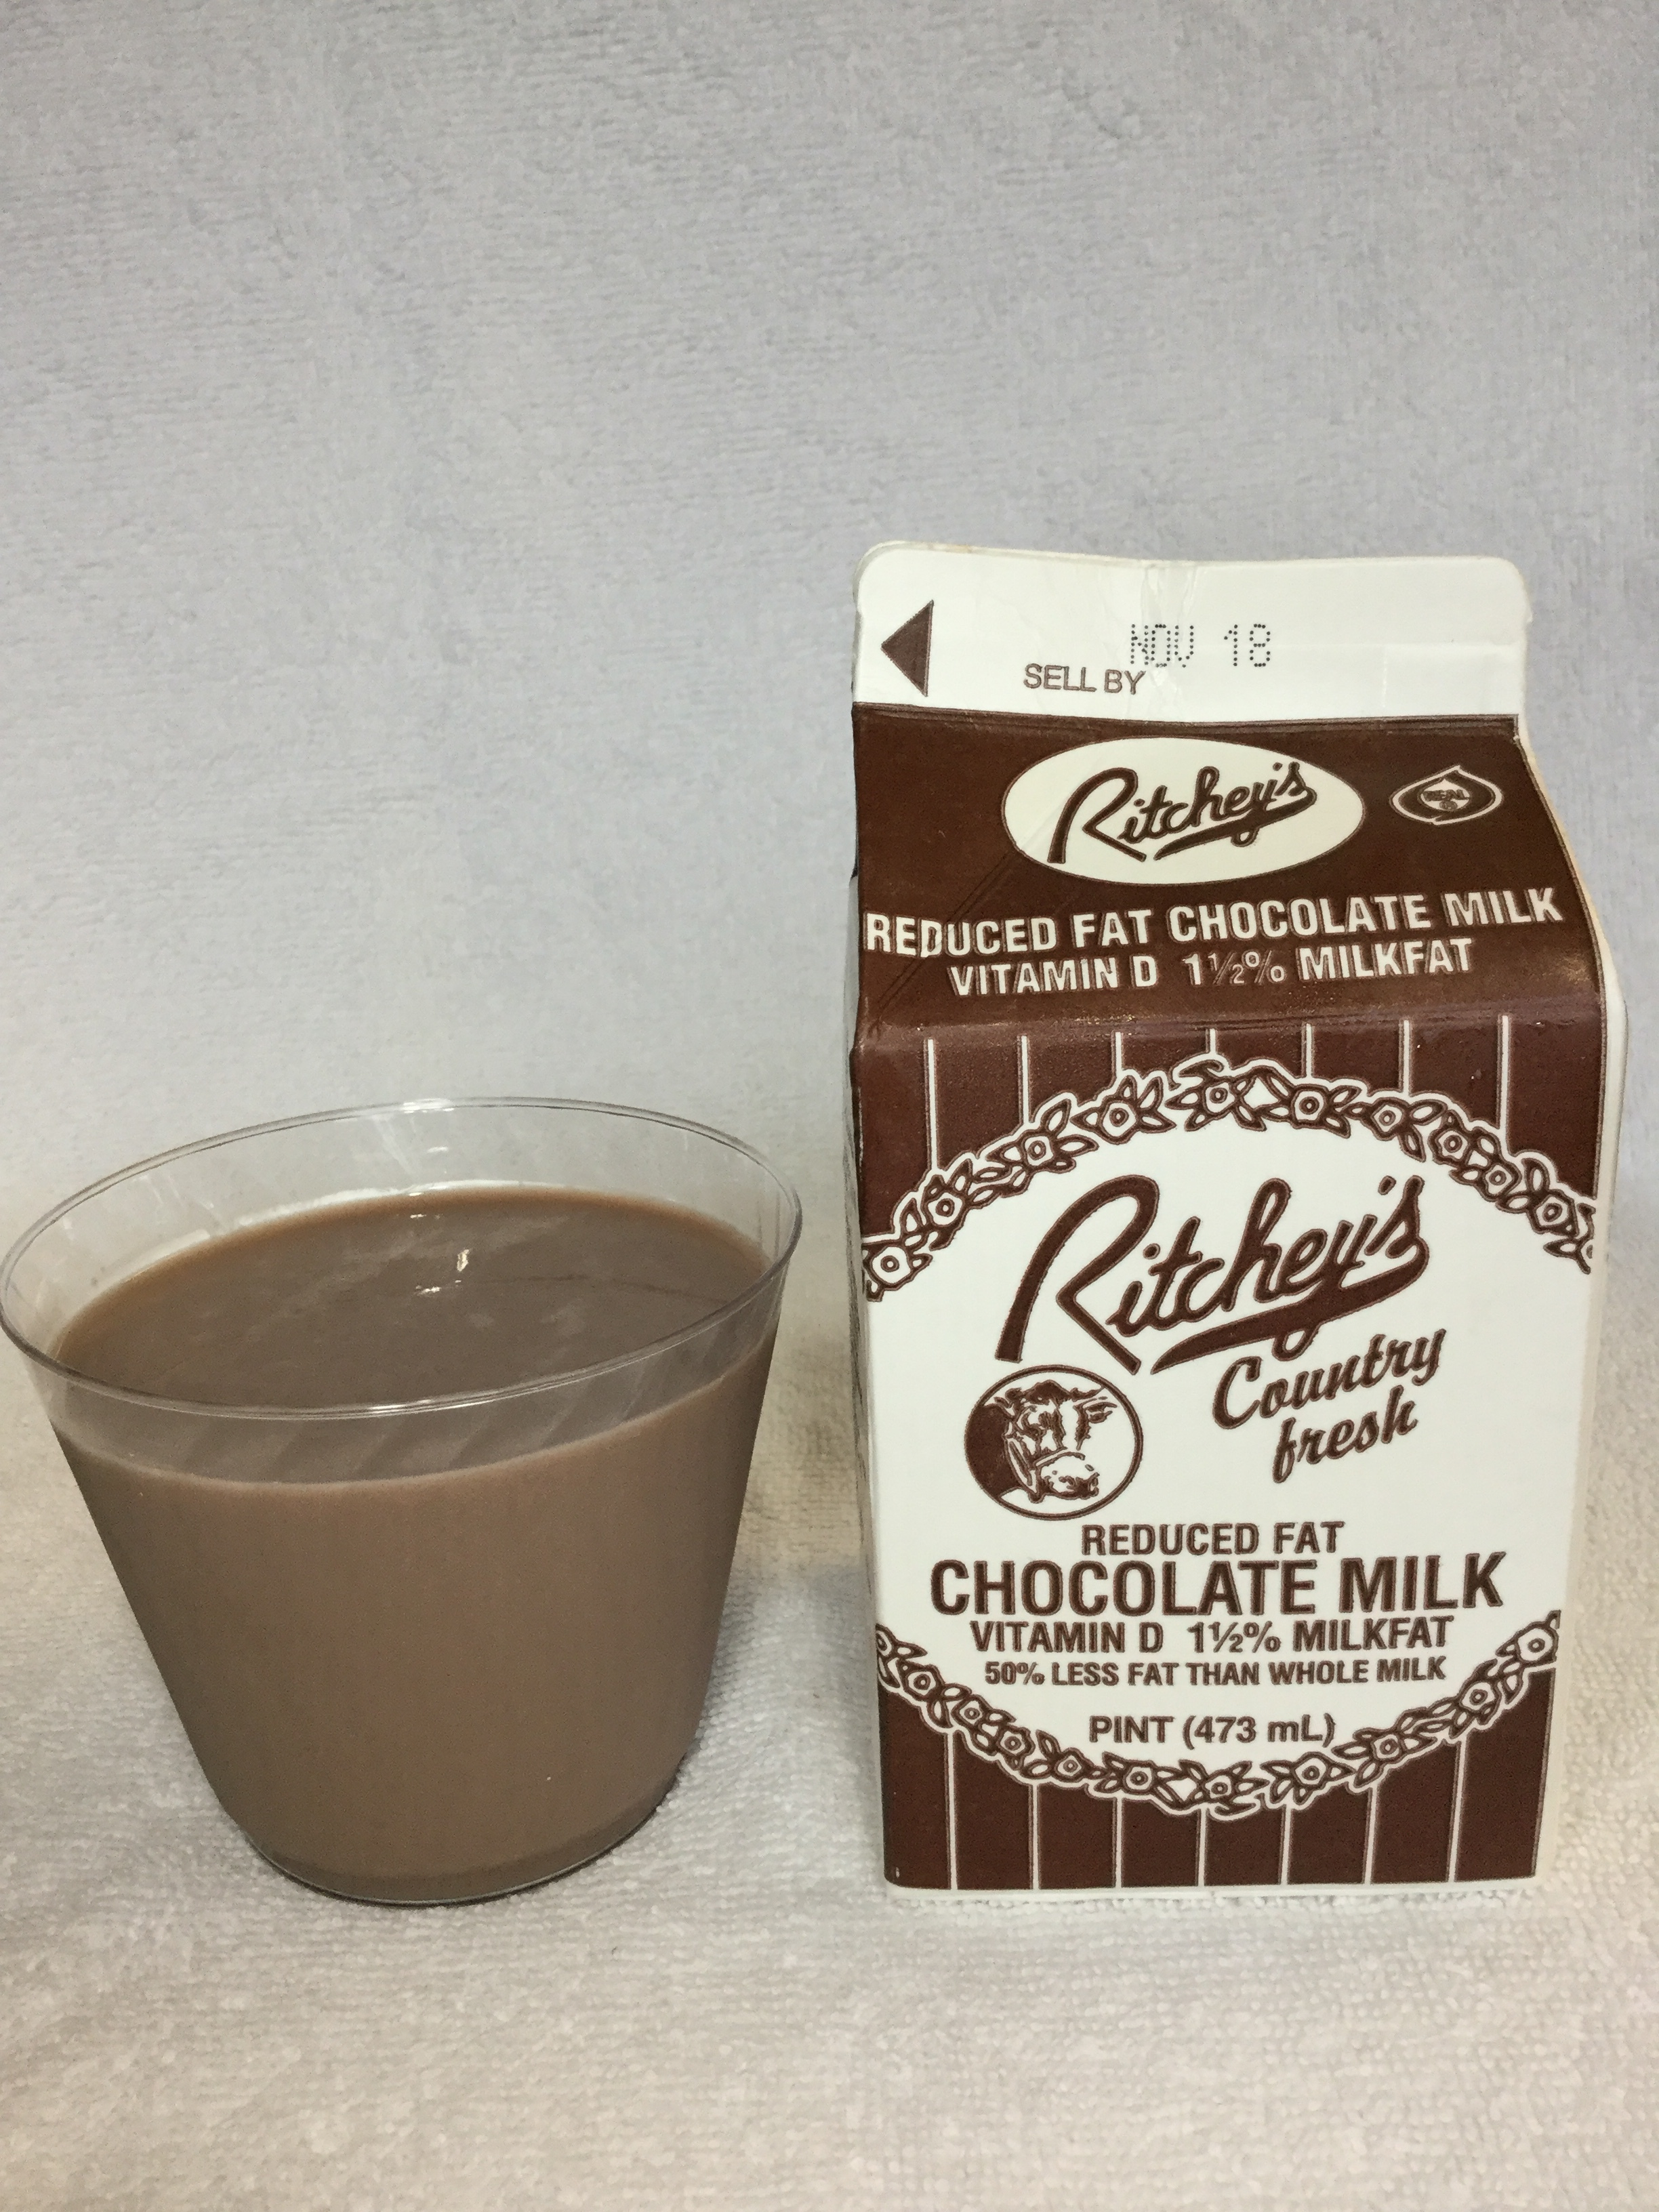 Ritchey's Country Fresh Chocolate Milk Cup